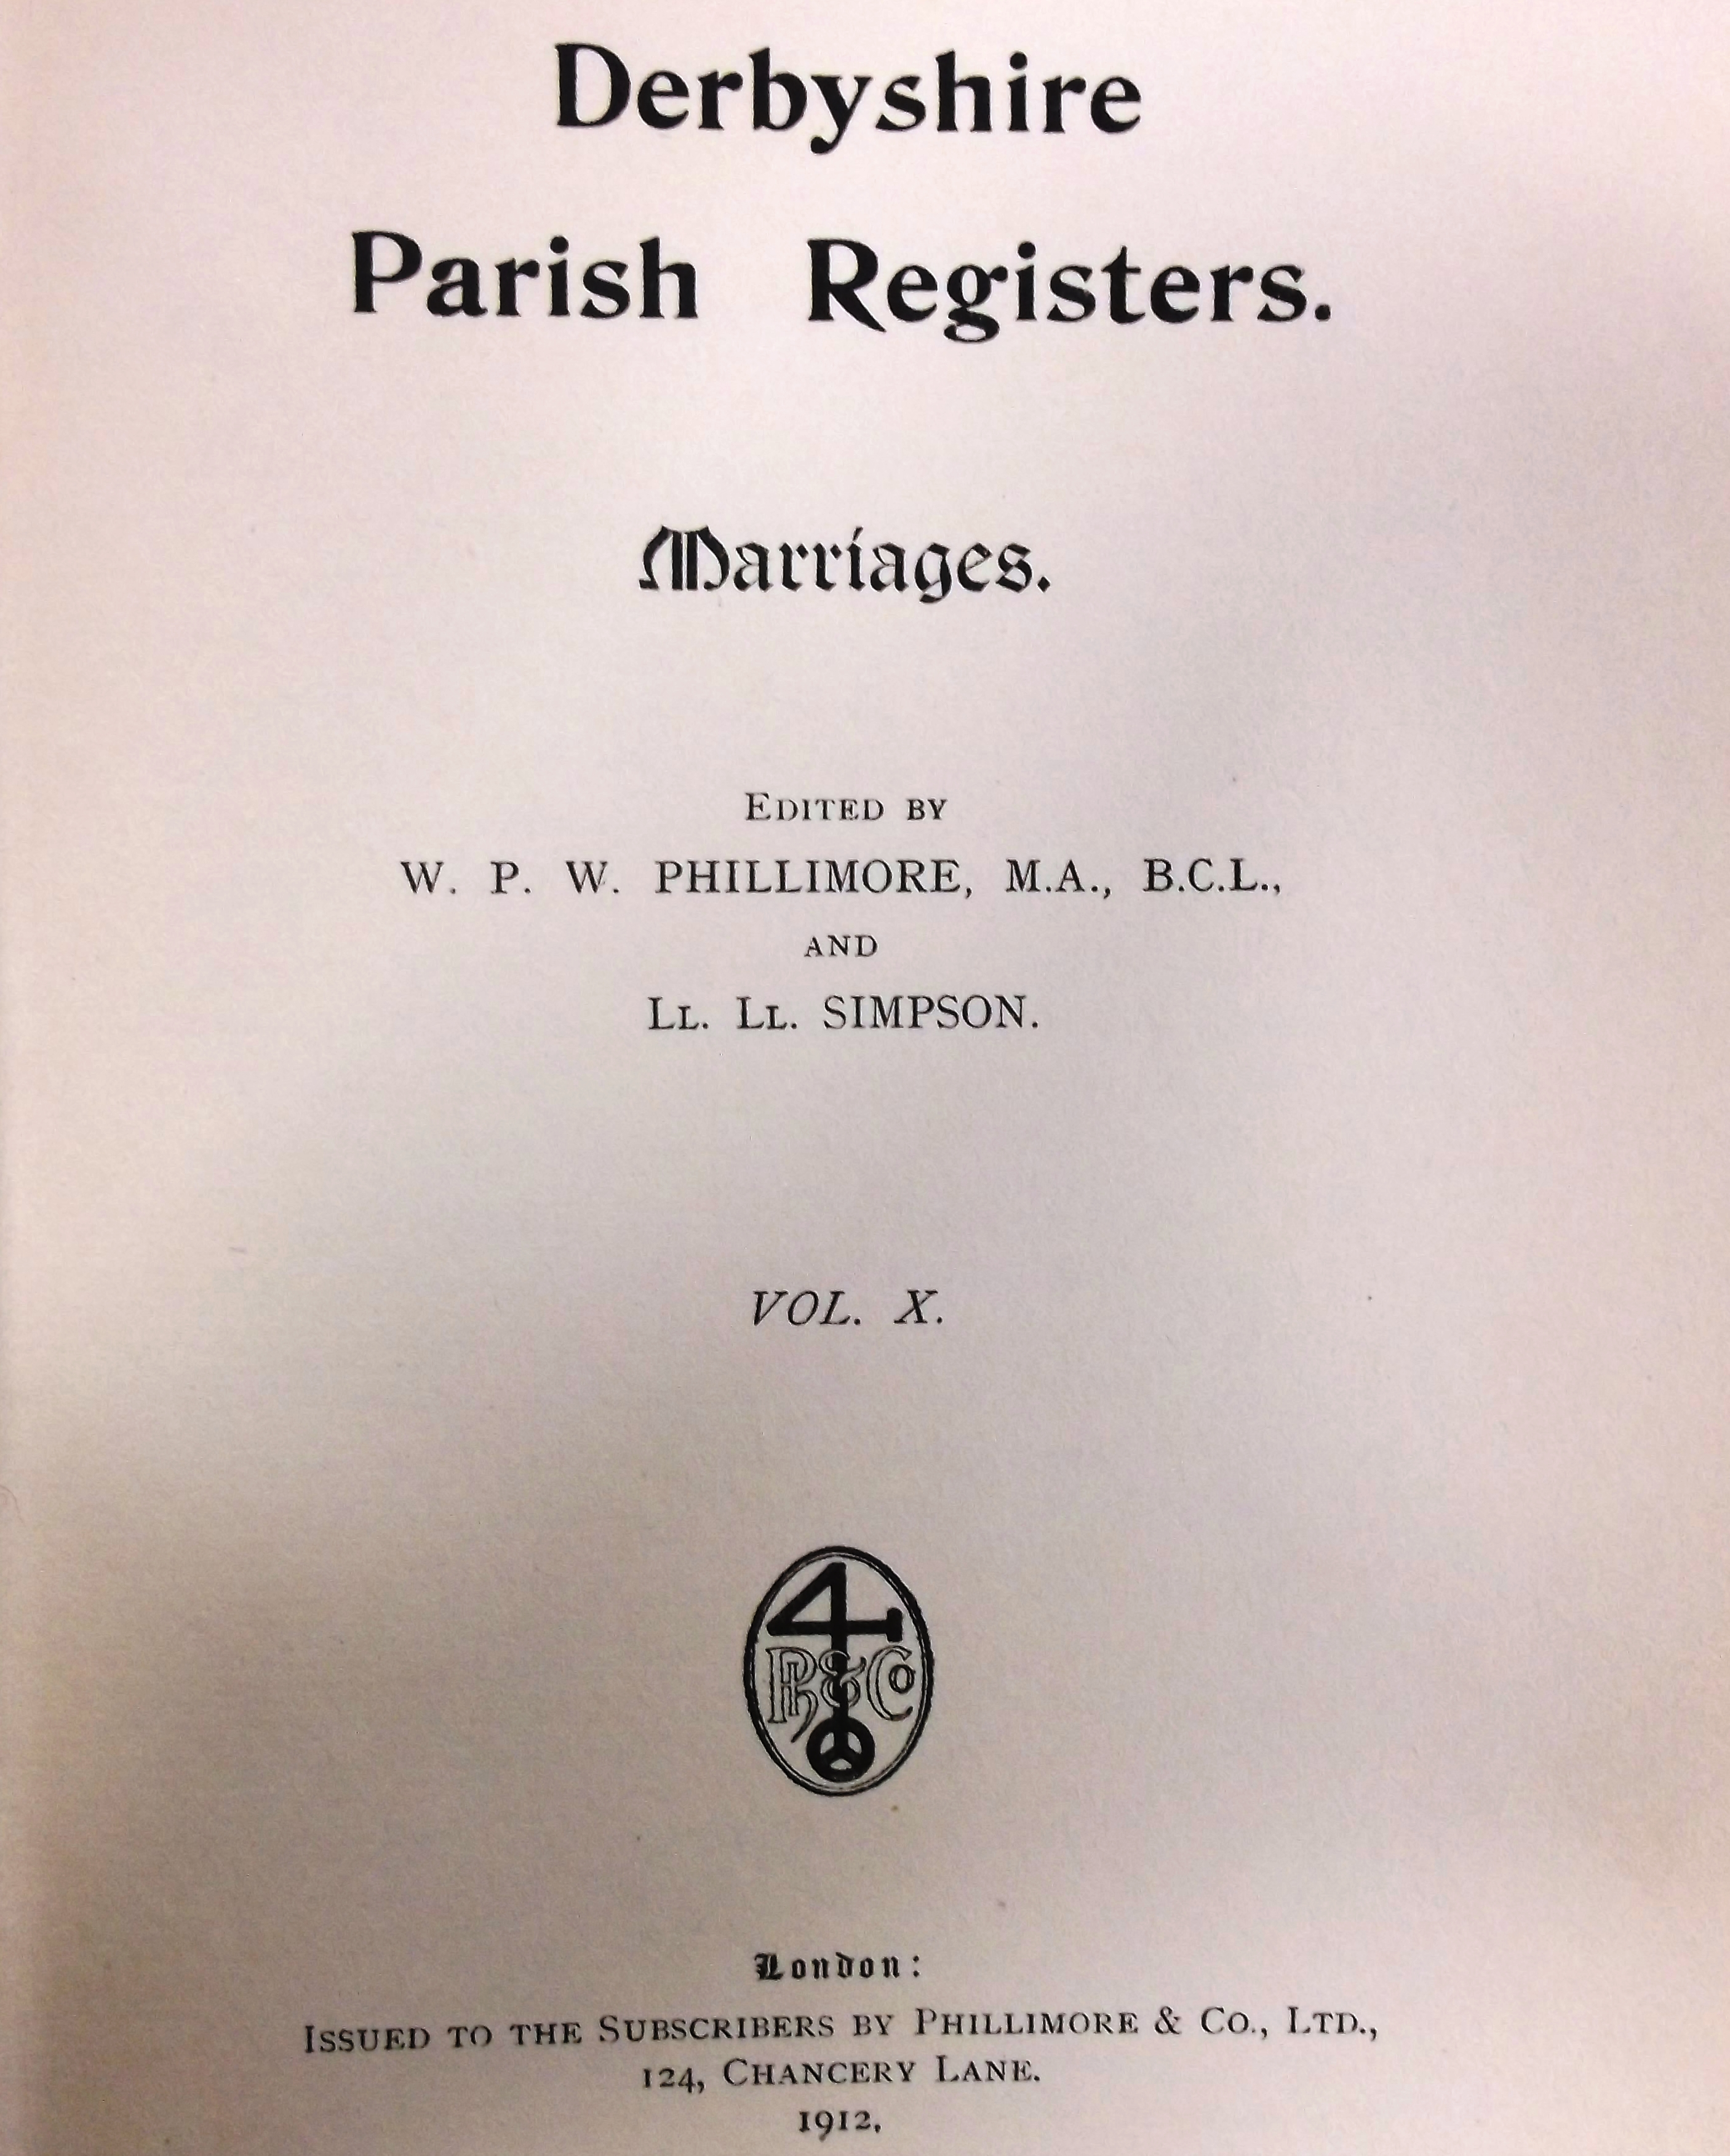 Derbyshire Phillimore Church Parish Records genealogy in pdf ebooks on disc